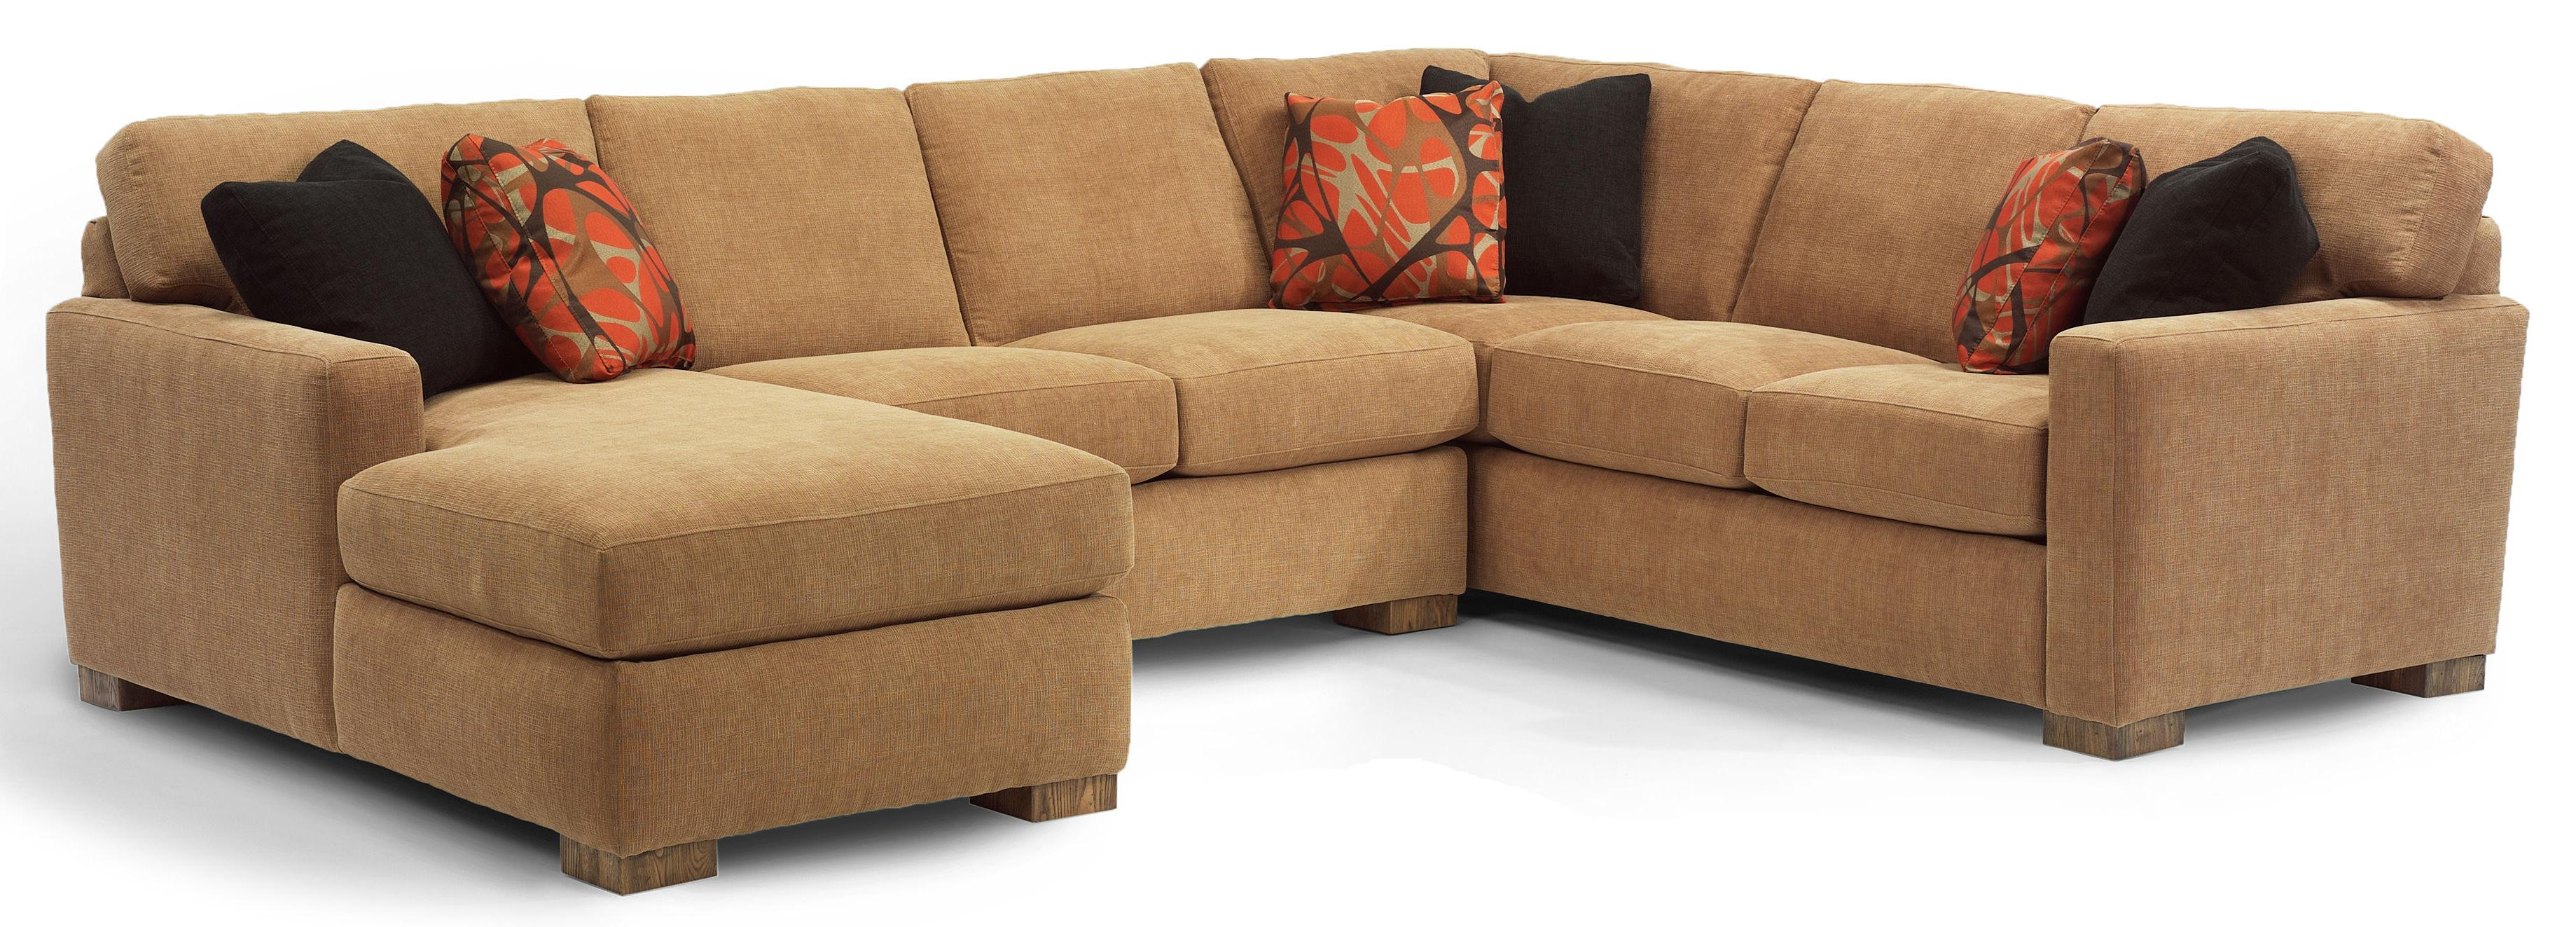 chocolate rc brown sectional willey contemporary furniture jsp sectionals rcwilley piece fabric view living sofa room tranquility